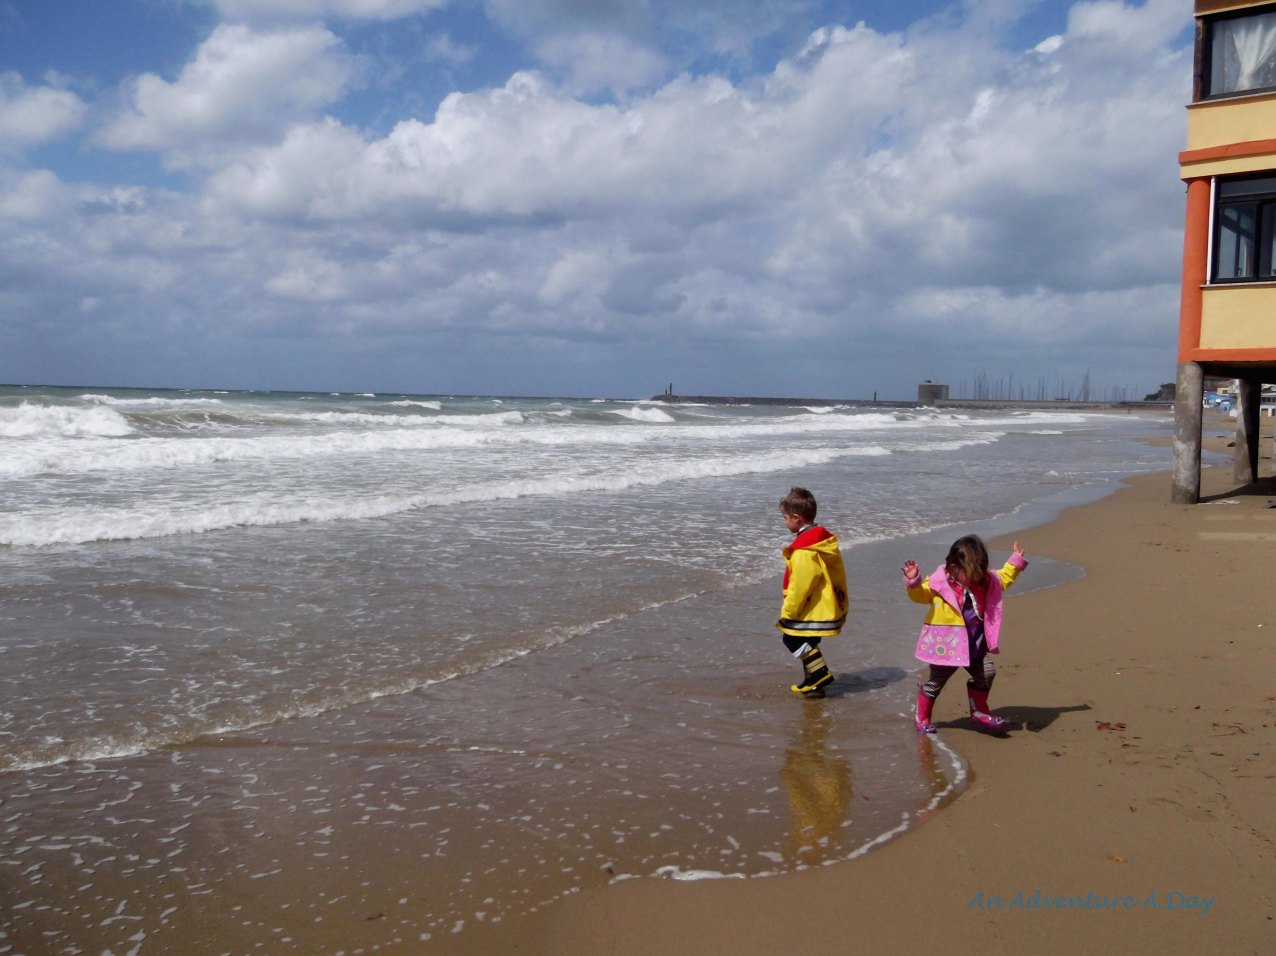 As the sun made its way through the clouds, the children enjoyed a few moments in the surf.